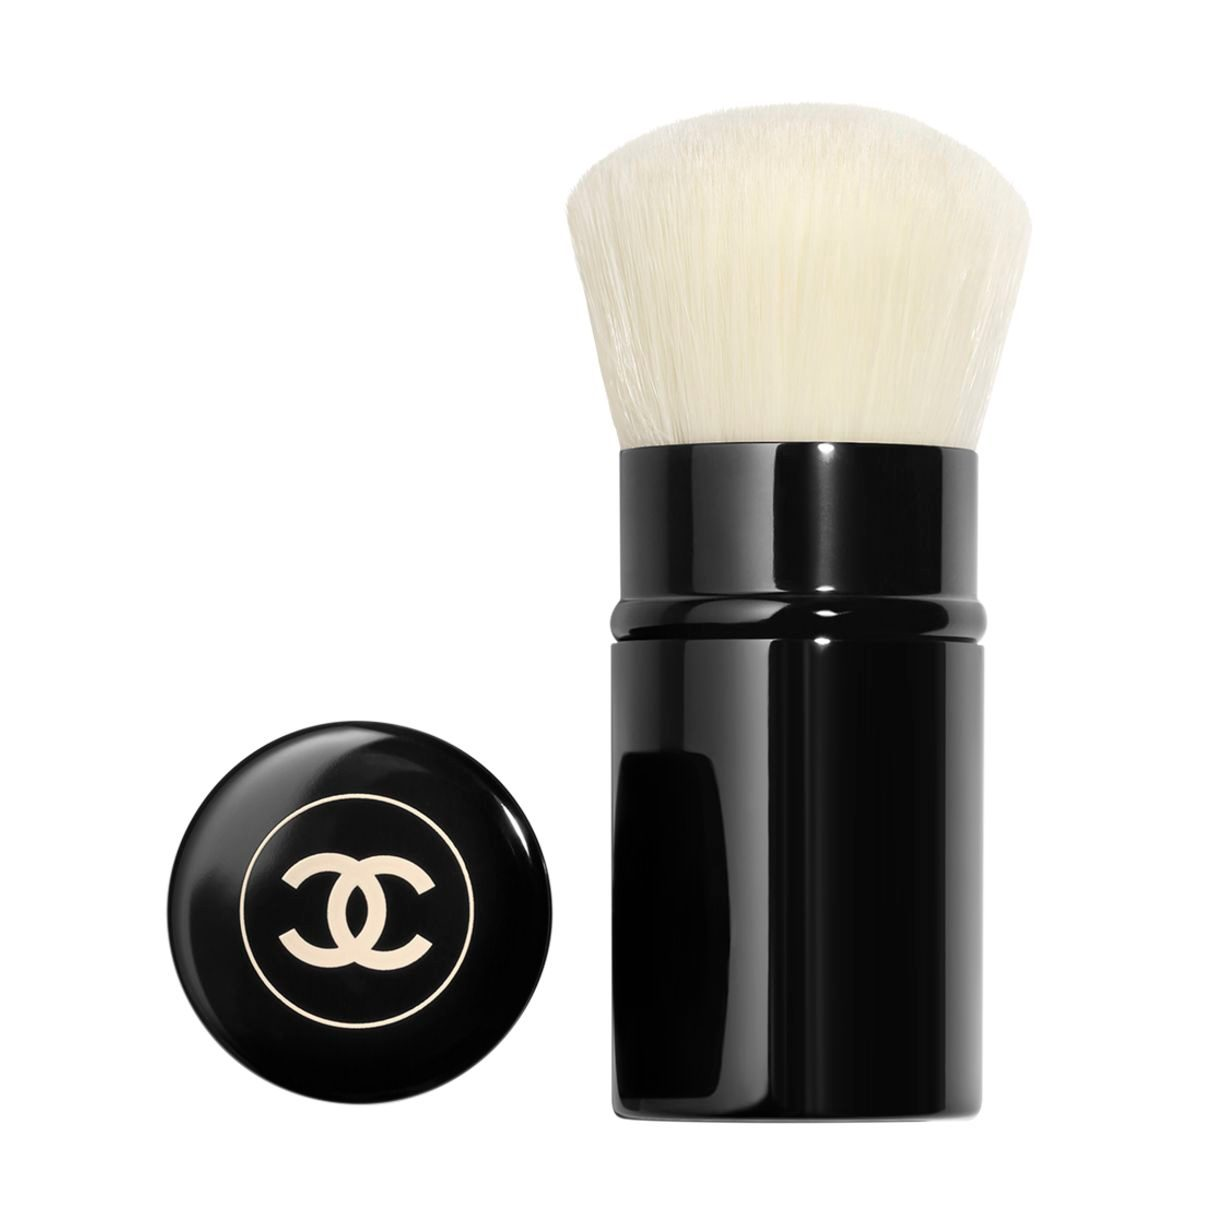 RETRACTABLE KABUKI BRUSH 伸縮Kabuki化妝掃